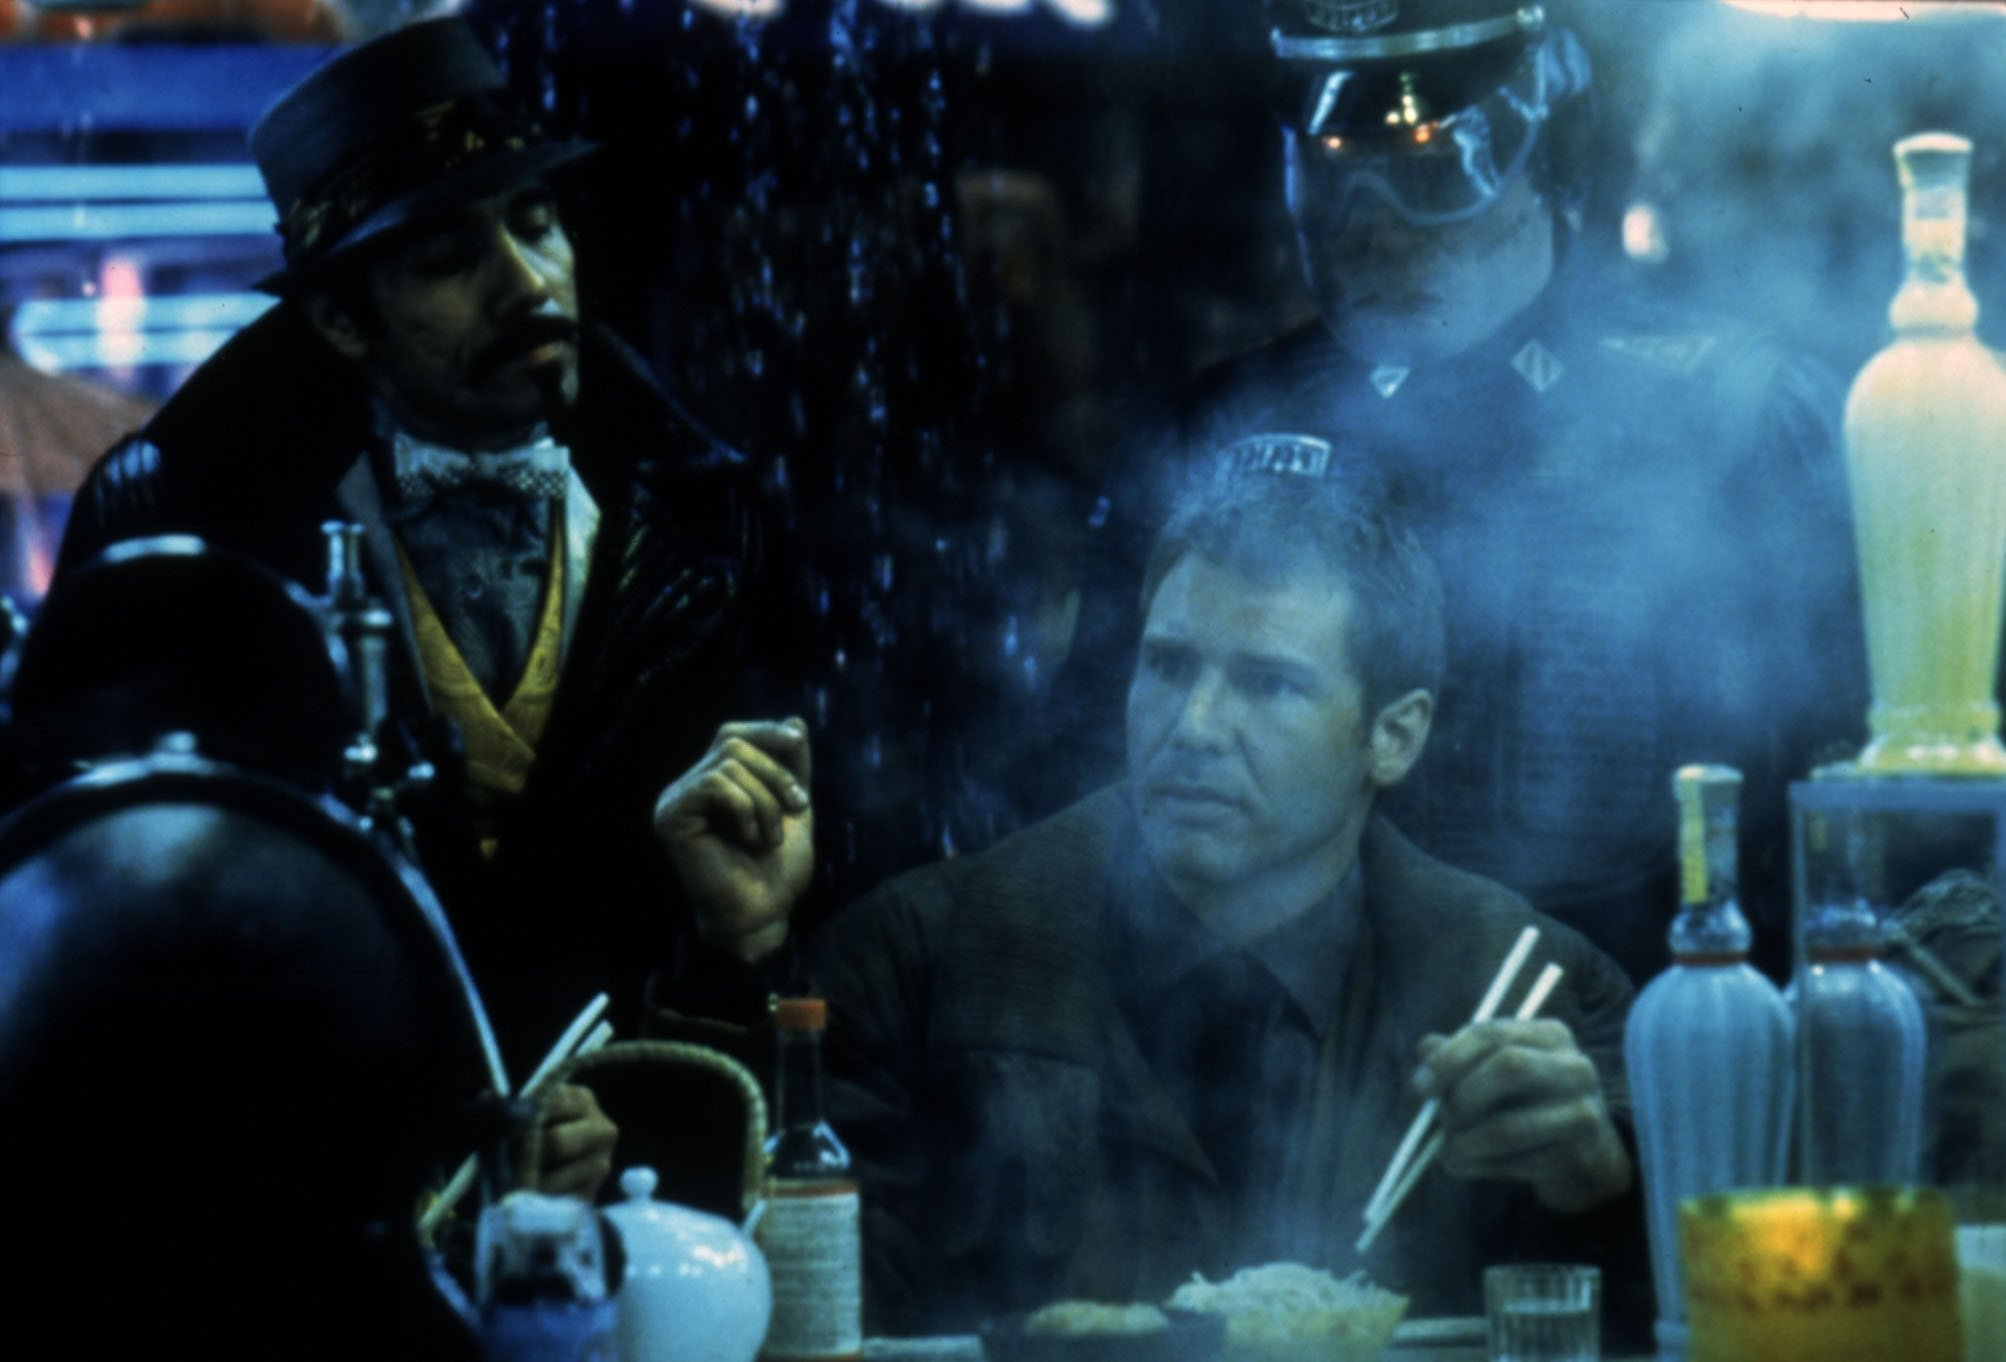 Edward James Olmos & Harrison Ford in Blade Runner